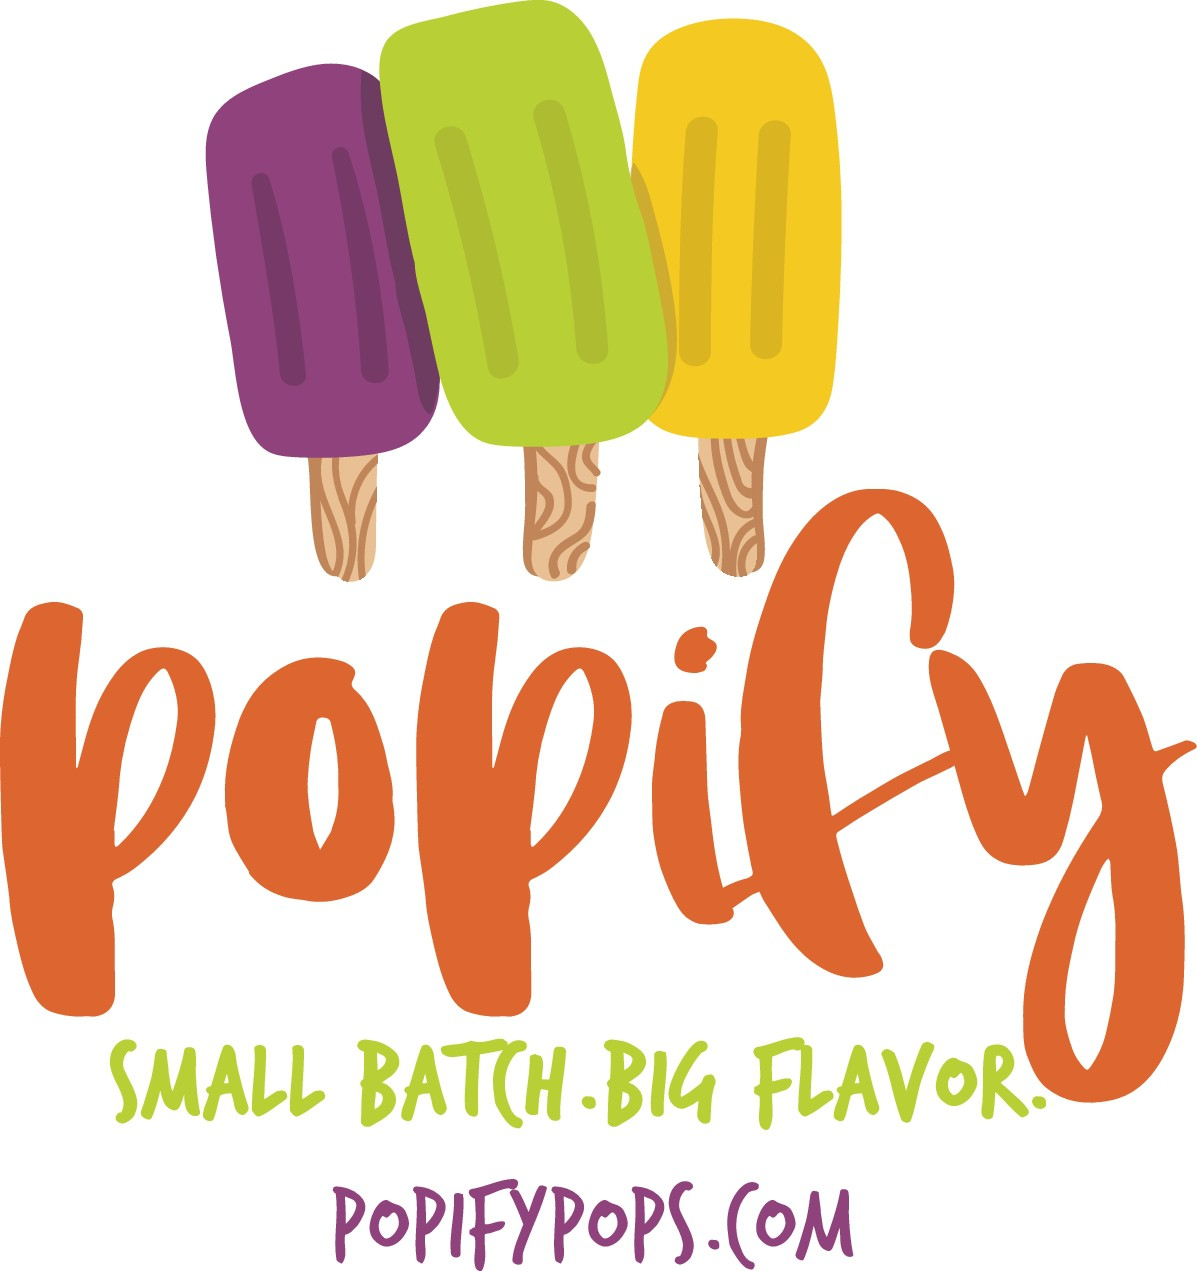 New colors for Popify Logo